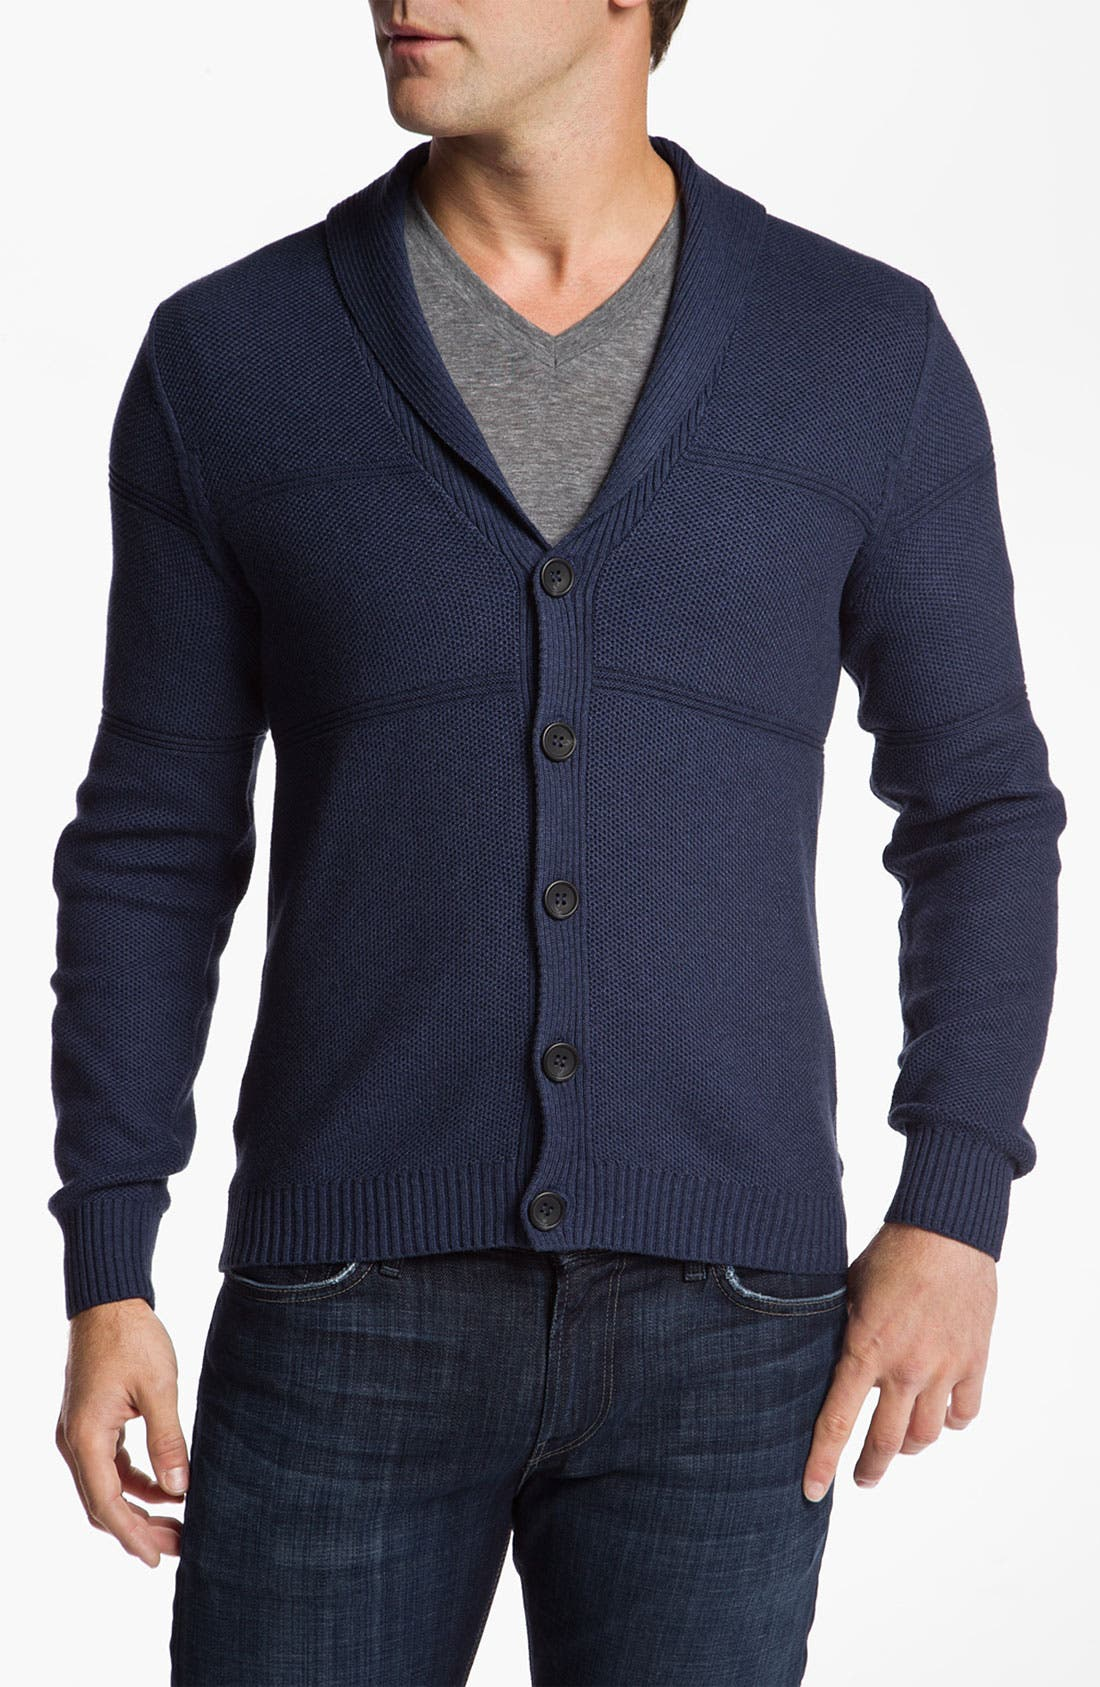 Main Image - 7 For All Mankind® Shawl Collar Cardigan